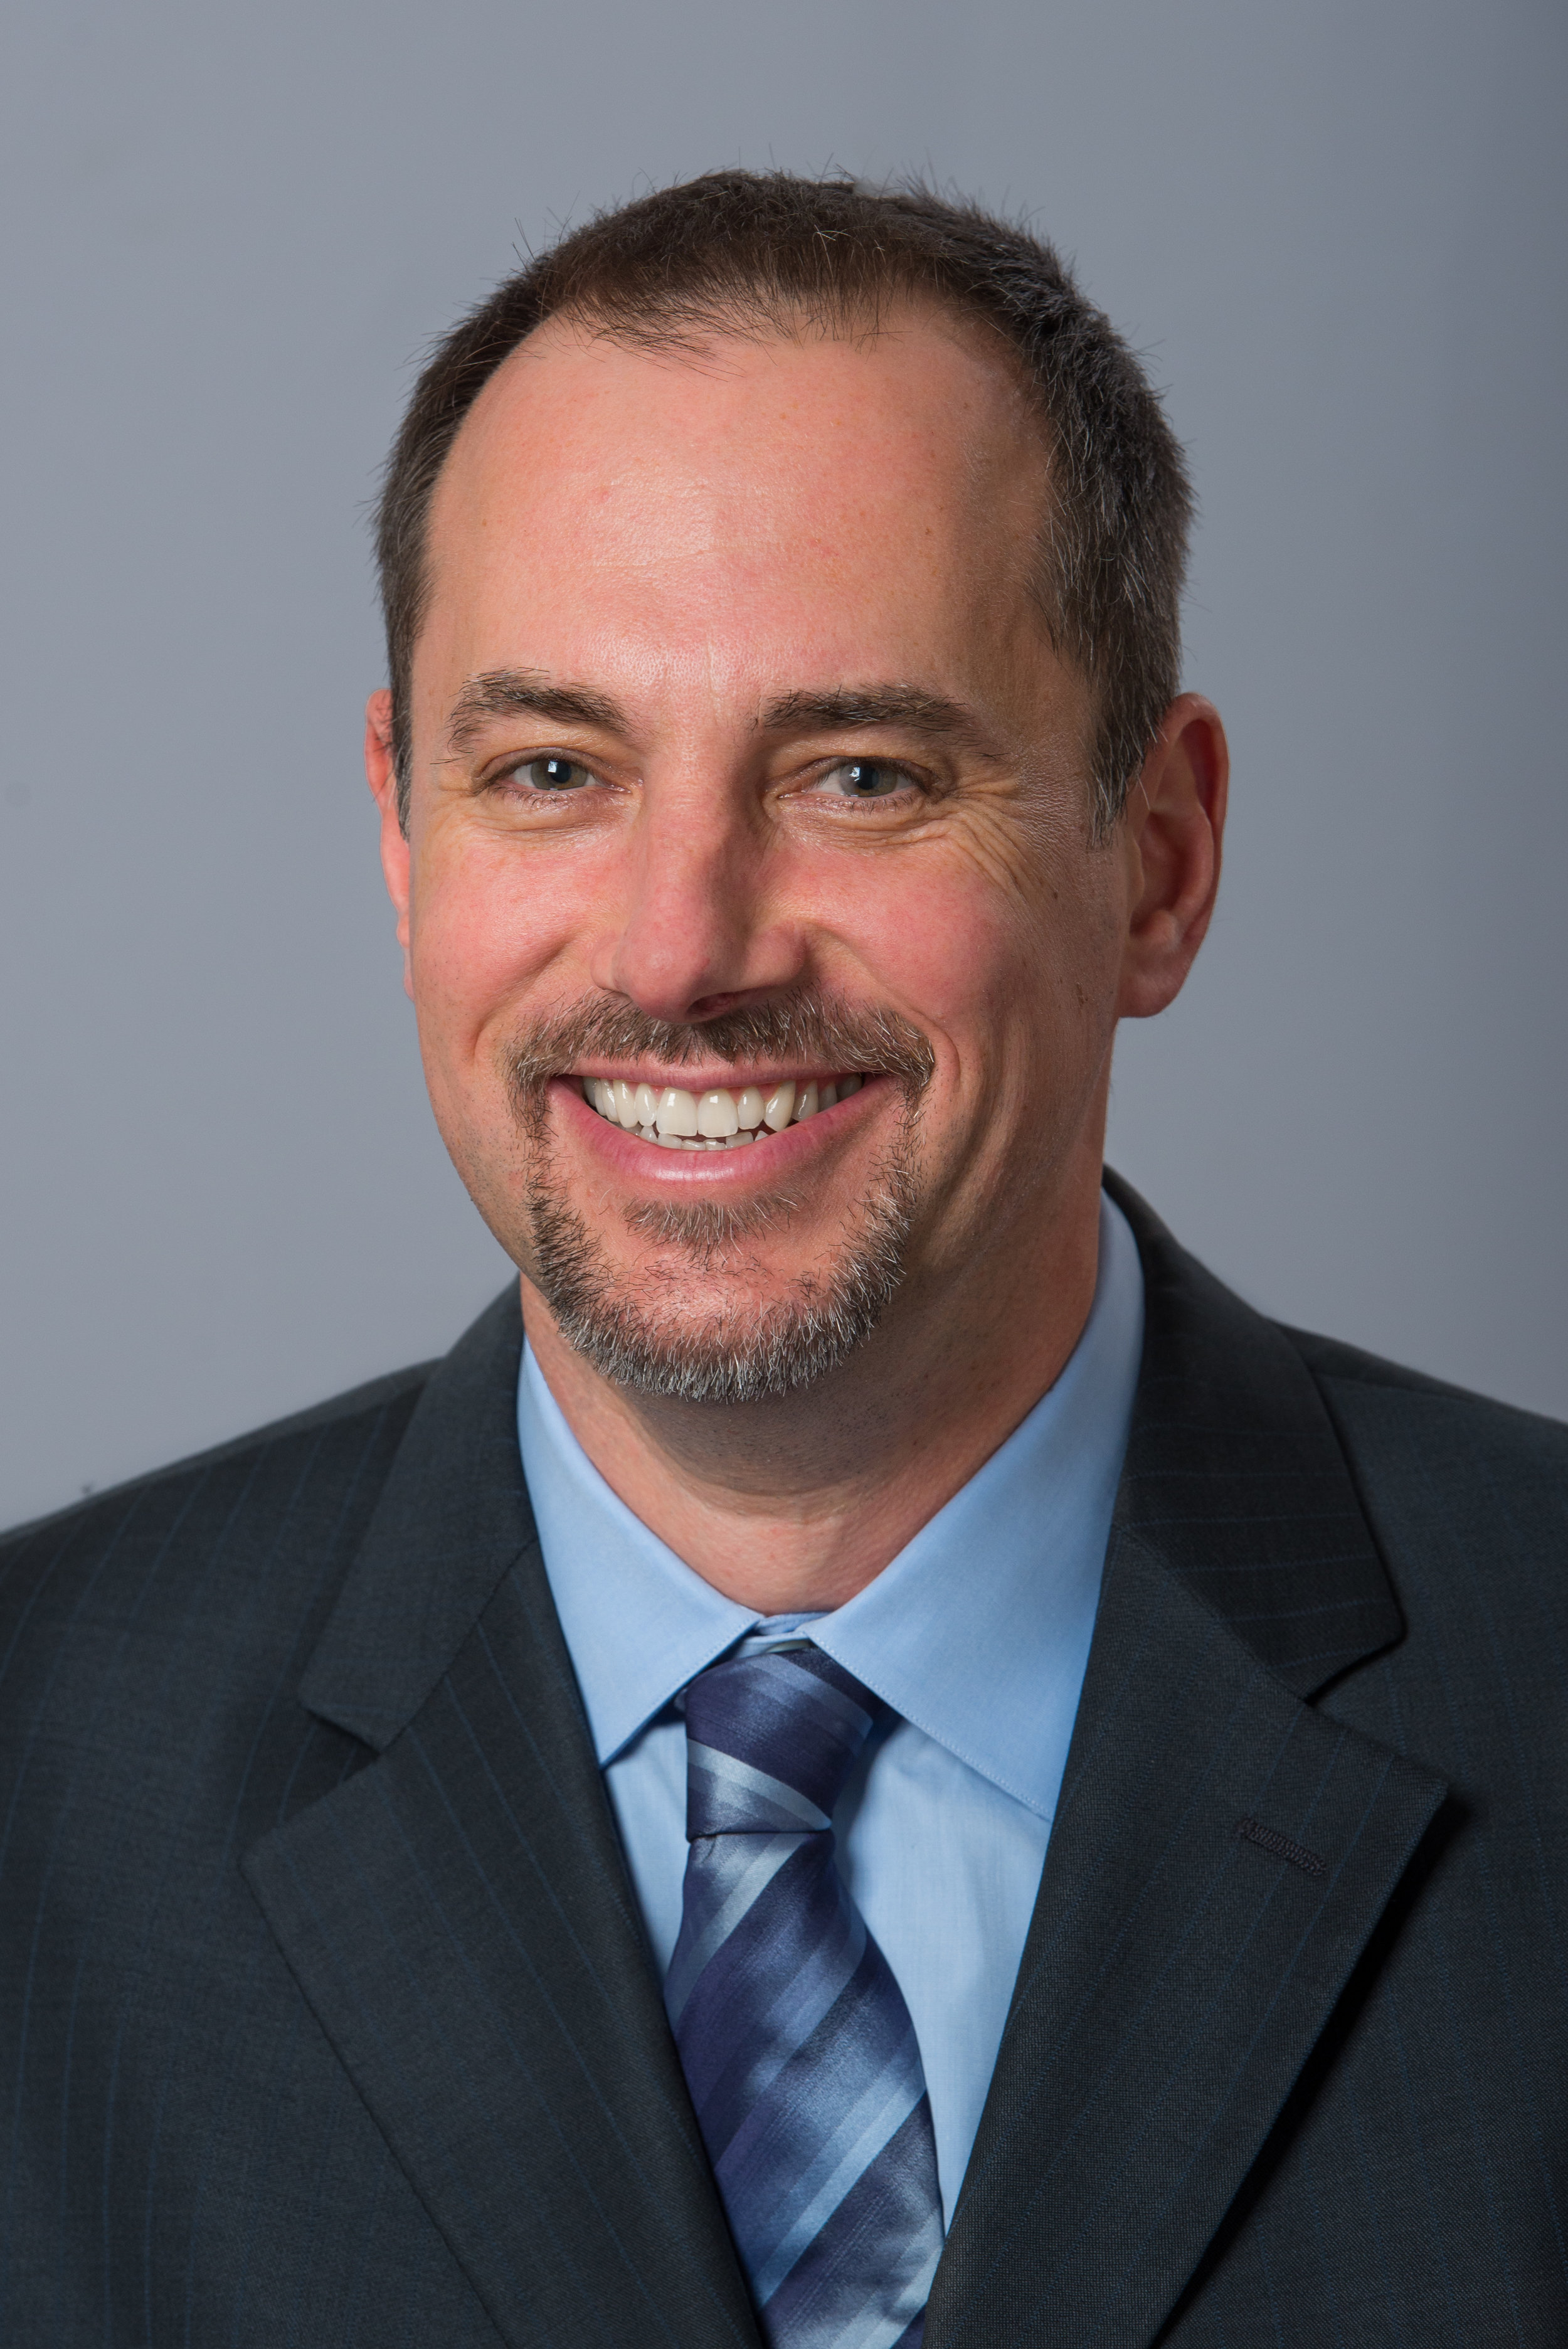 Dr. Michael J. D'Amato - Dr. D'Amato is a board certified orthopedic surgeon and specializes in shoulder and knee injuries. He has trained with team physicians for multiple professional sports teams such as New York Jets, New York Rangers, New York Islanders, Chicago Bulls and Chicago White Sox.Learn More ->